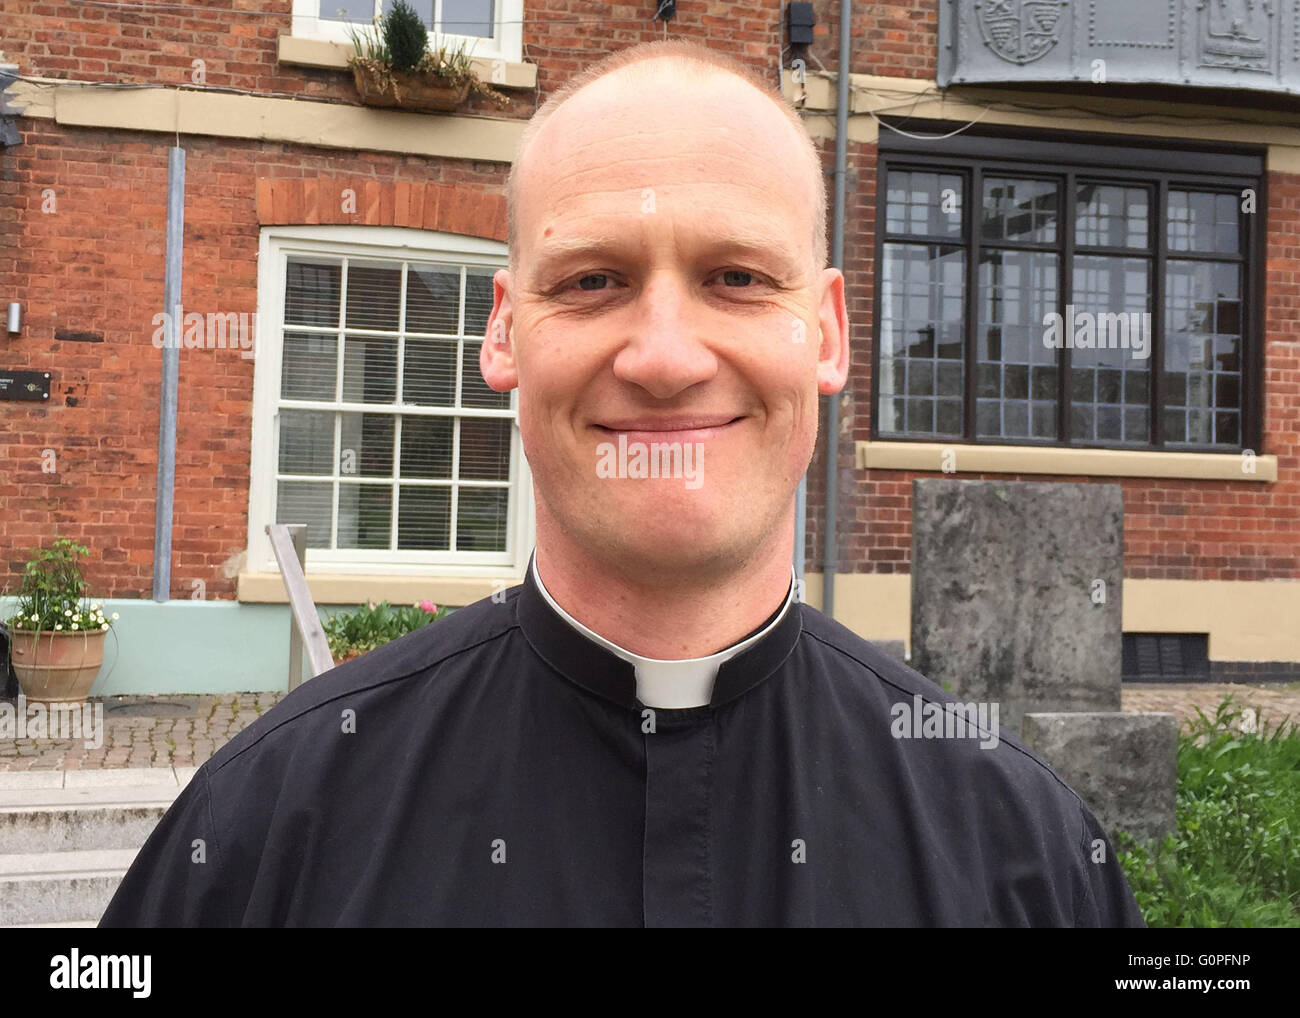 Leicester, Great Britian. 1st May, 2016. Johannes Arens, vicar of Leicester Cathedral pictured in Leicester, Great - Stock Image